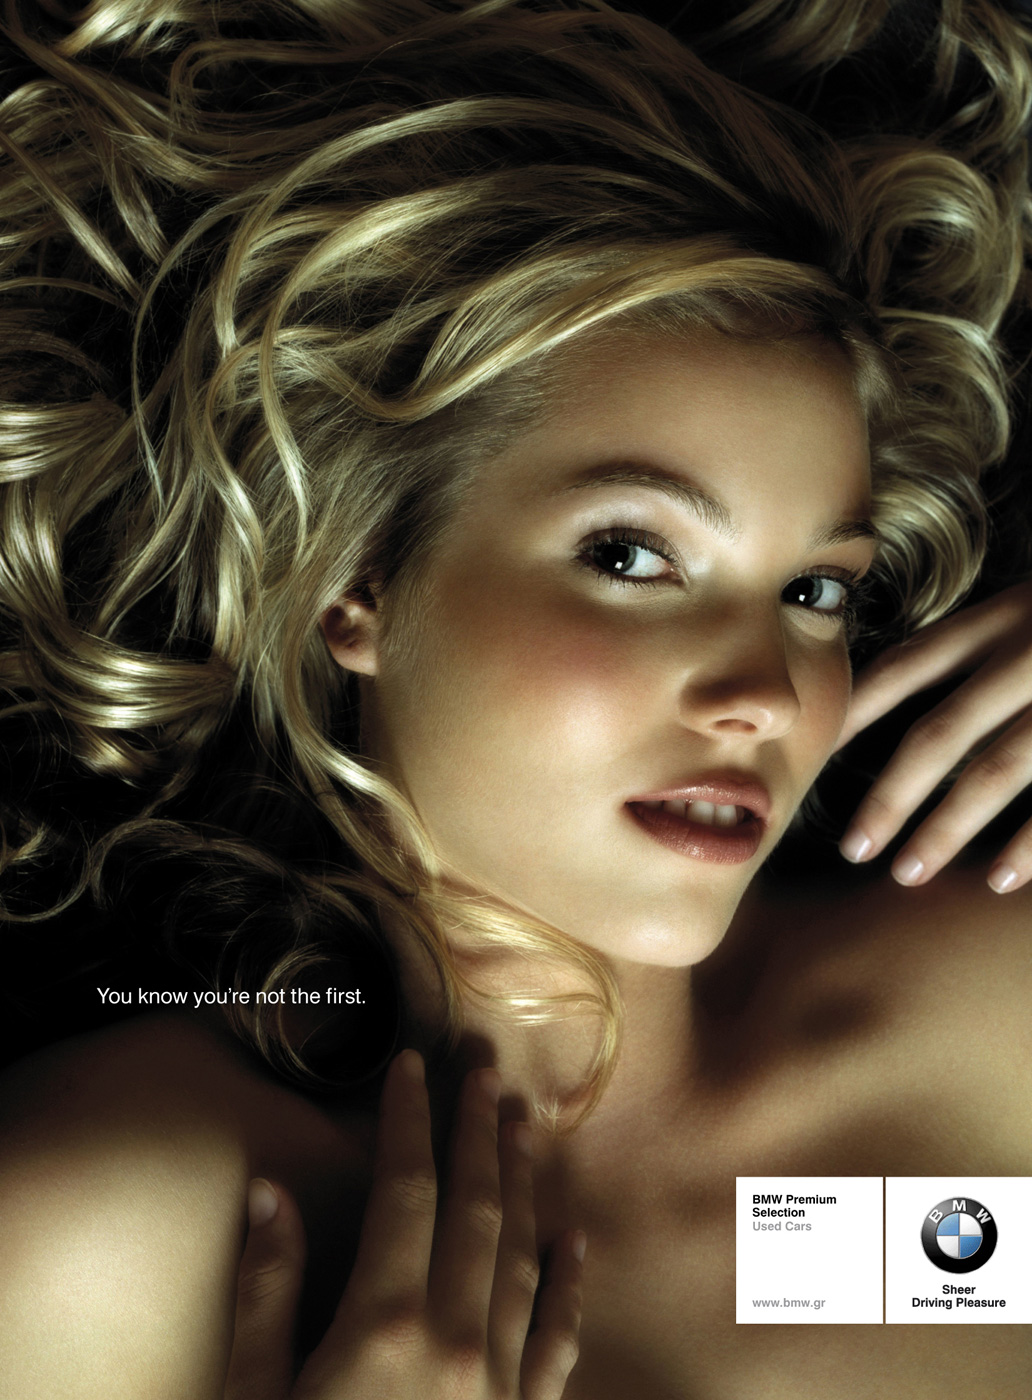 Very sexy ads — photo 11